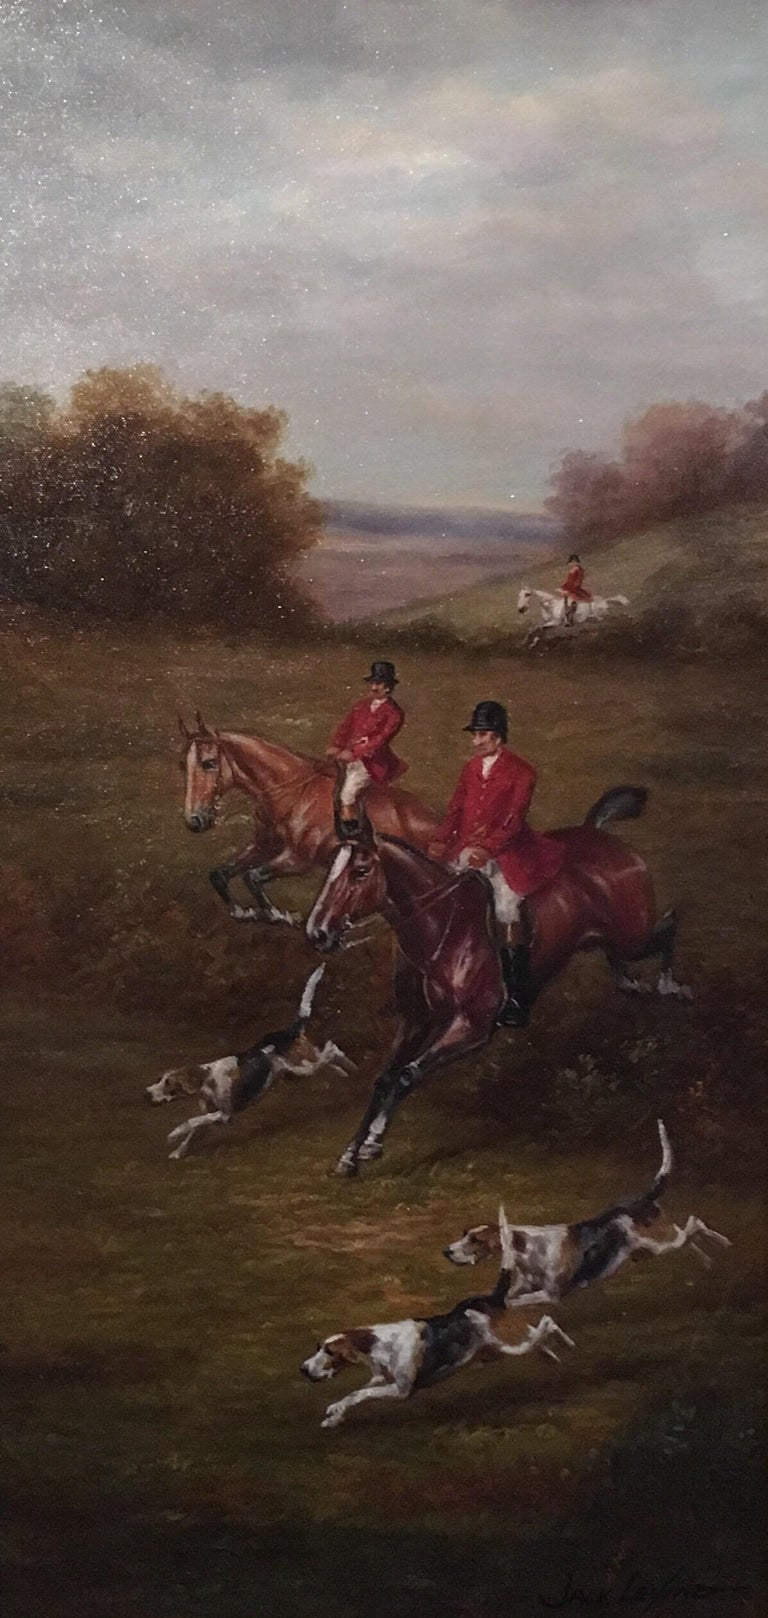 Fox Hunt Original Oil Painting, Impressionist Landscape, British, Signed By British artist Jack Levine, Mid 20th Century Signed by the artist on the lower right hand corner Oil painting on canvas, framed Framed size: 30 x 17.5 inches  Fabulously